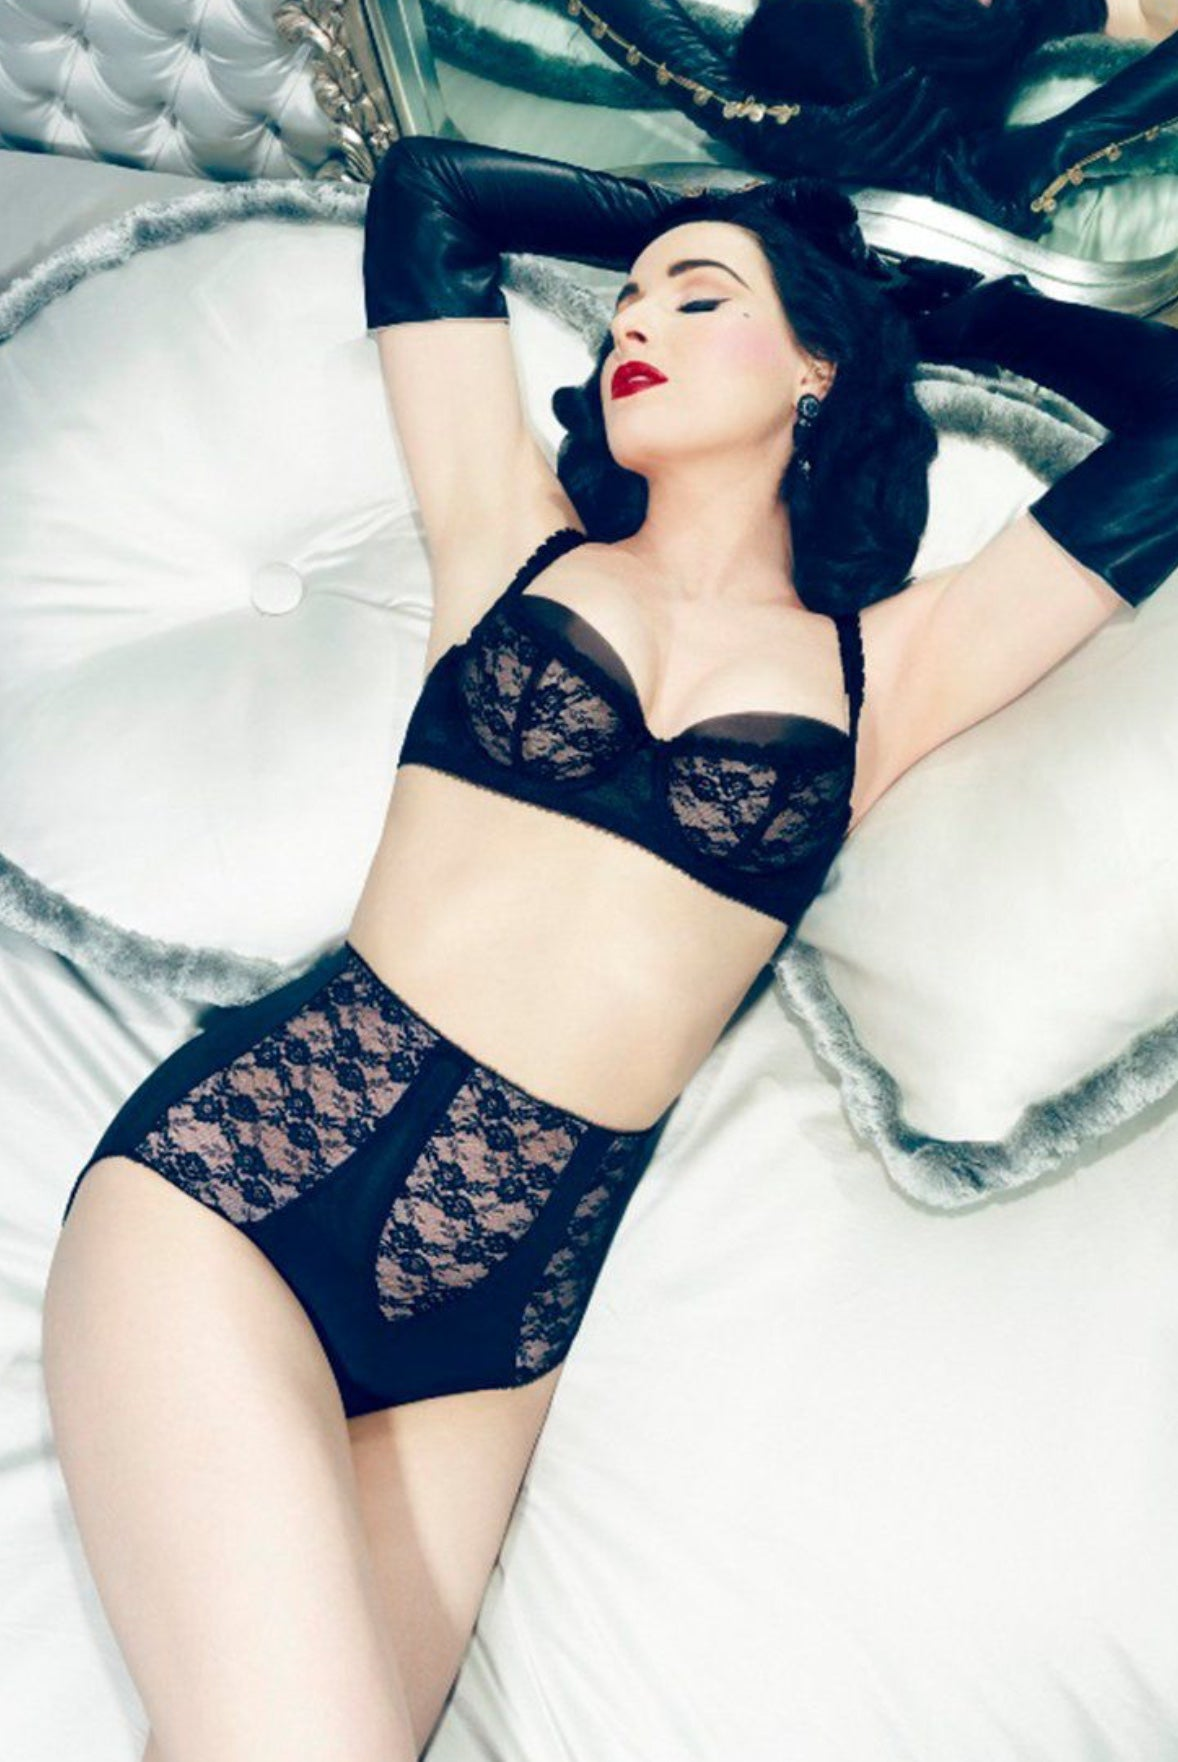 Dita Von Teese Sheer Witchery Balconette Bra - select sizes 32B-44F left!